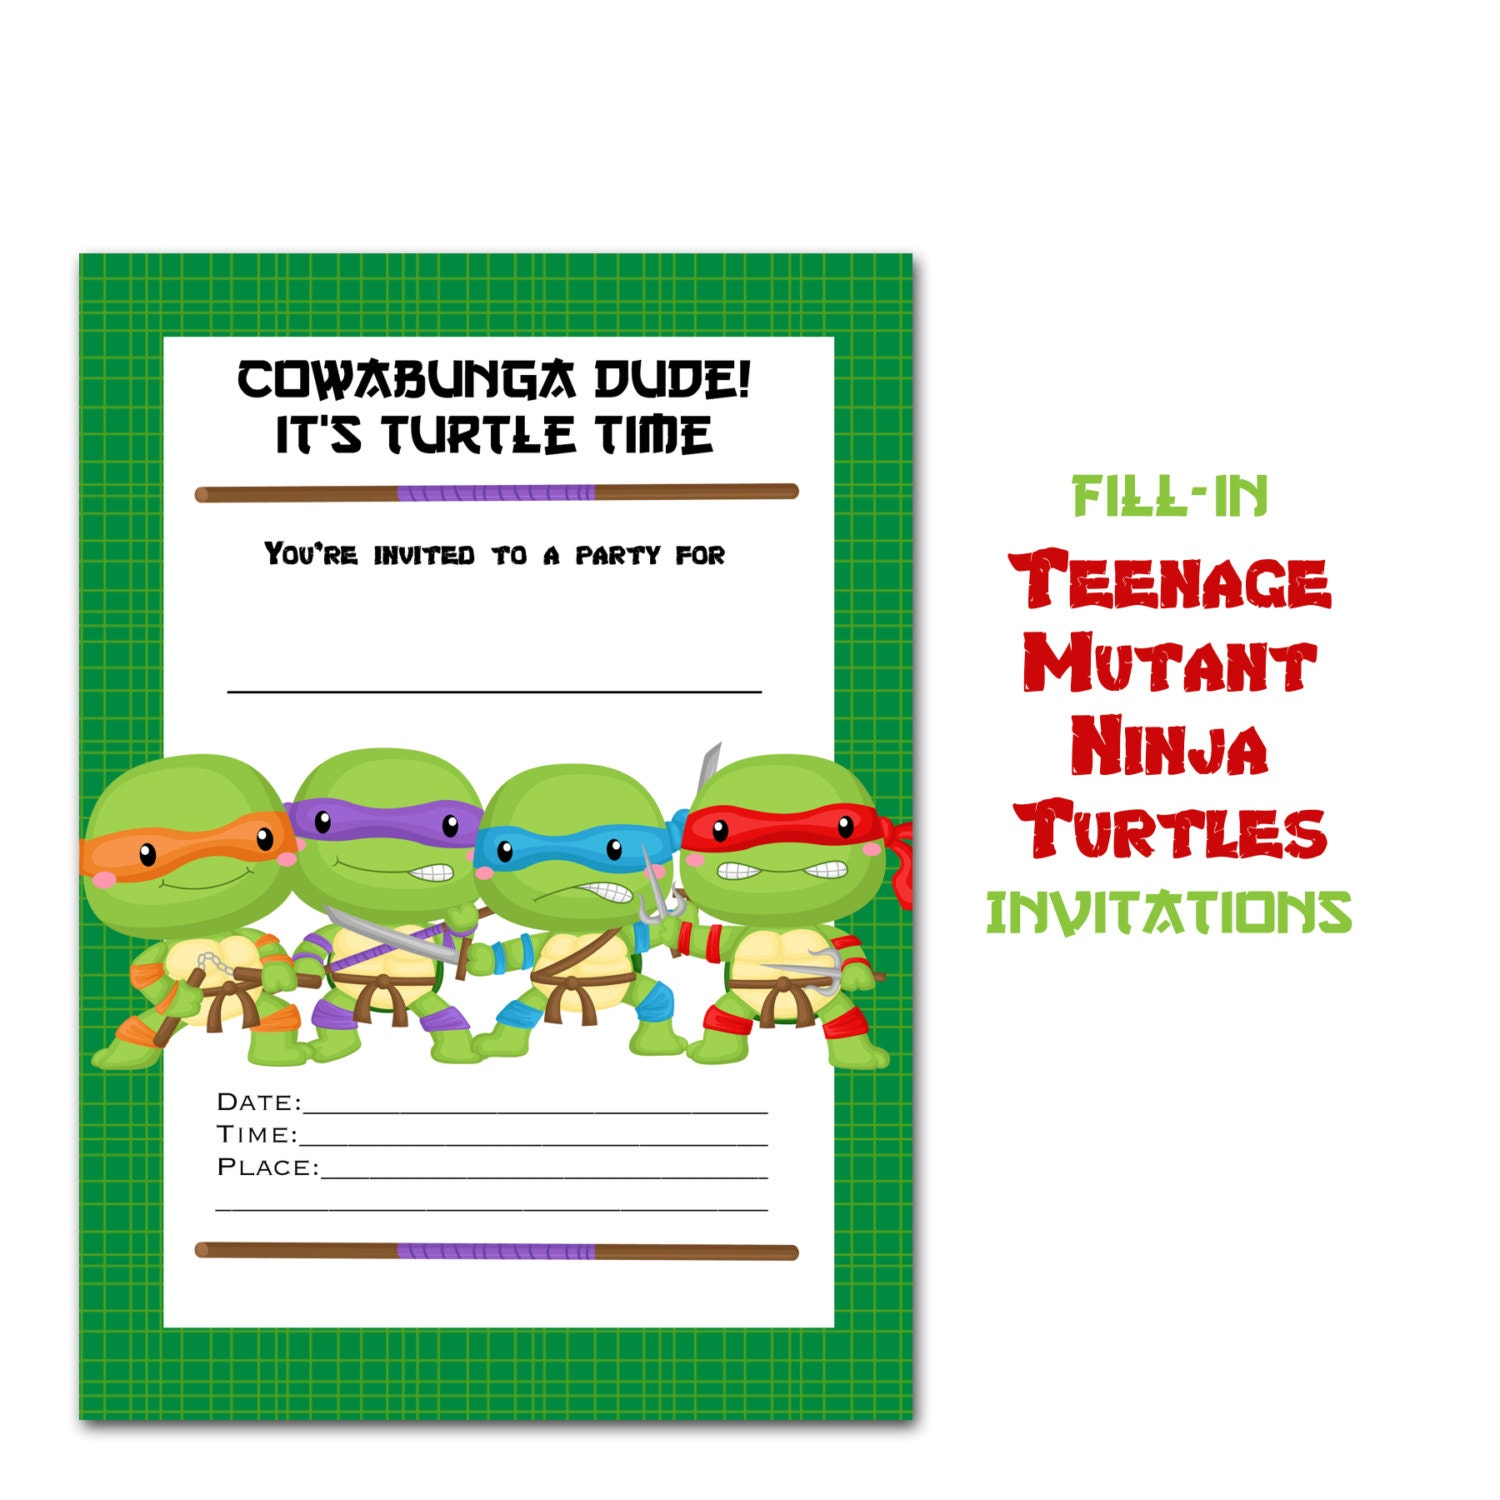 Teenage Mutant Ninja Turtle Invitation Fill-in Turtle cards | Etsy